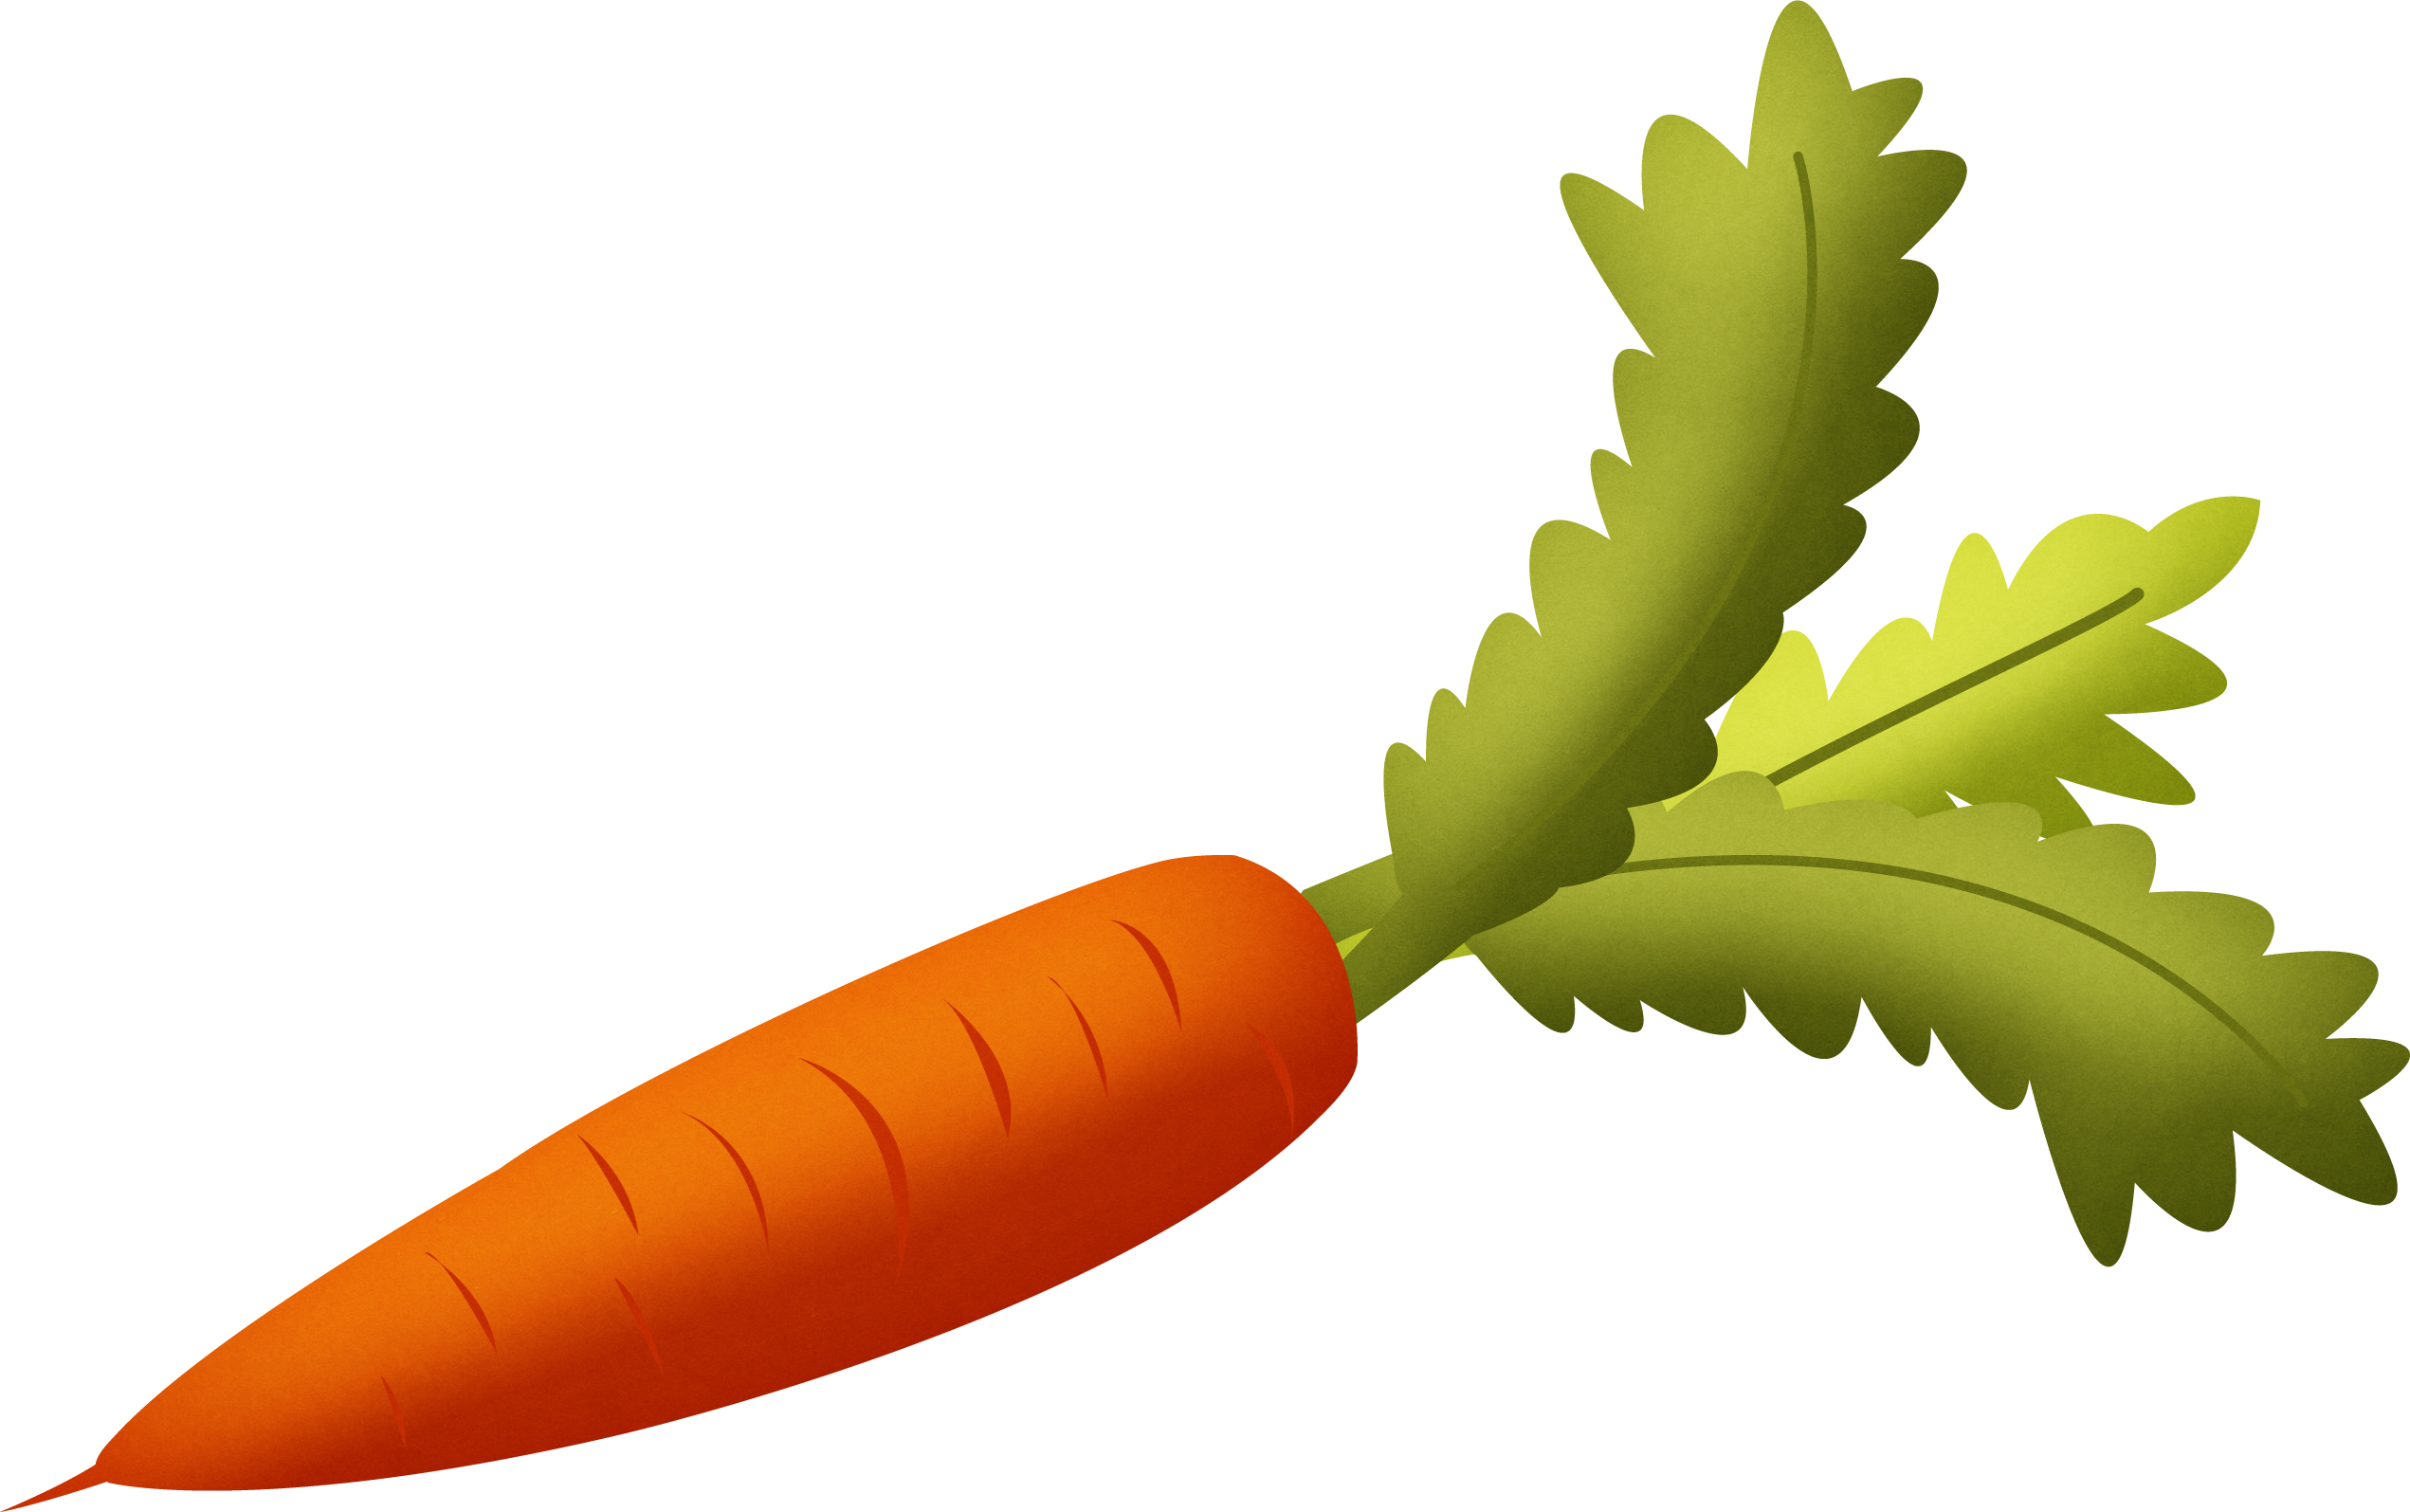 carrot Forget about vitamin a pills carrots provide vitamin a and a host of other impressive health benefits including beautiful skin, cancer prevention and anti-aging learn how to reap the benefits from this crunchy powerfood.